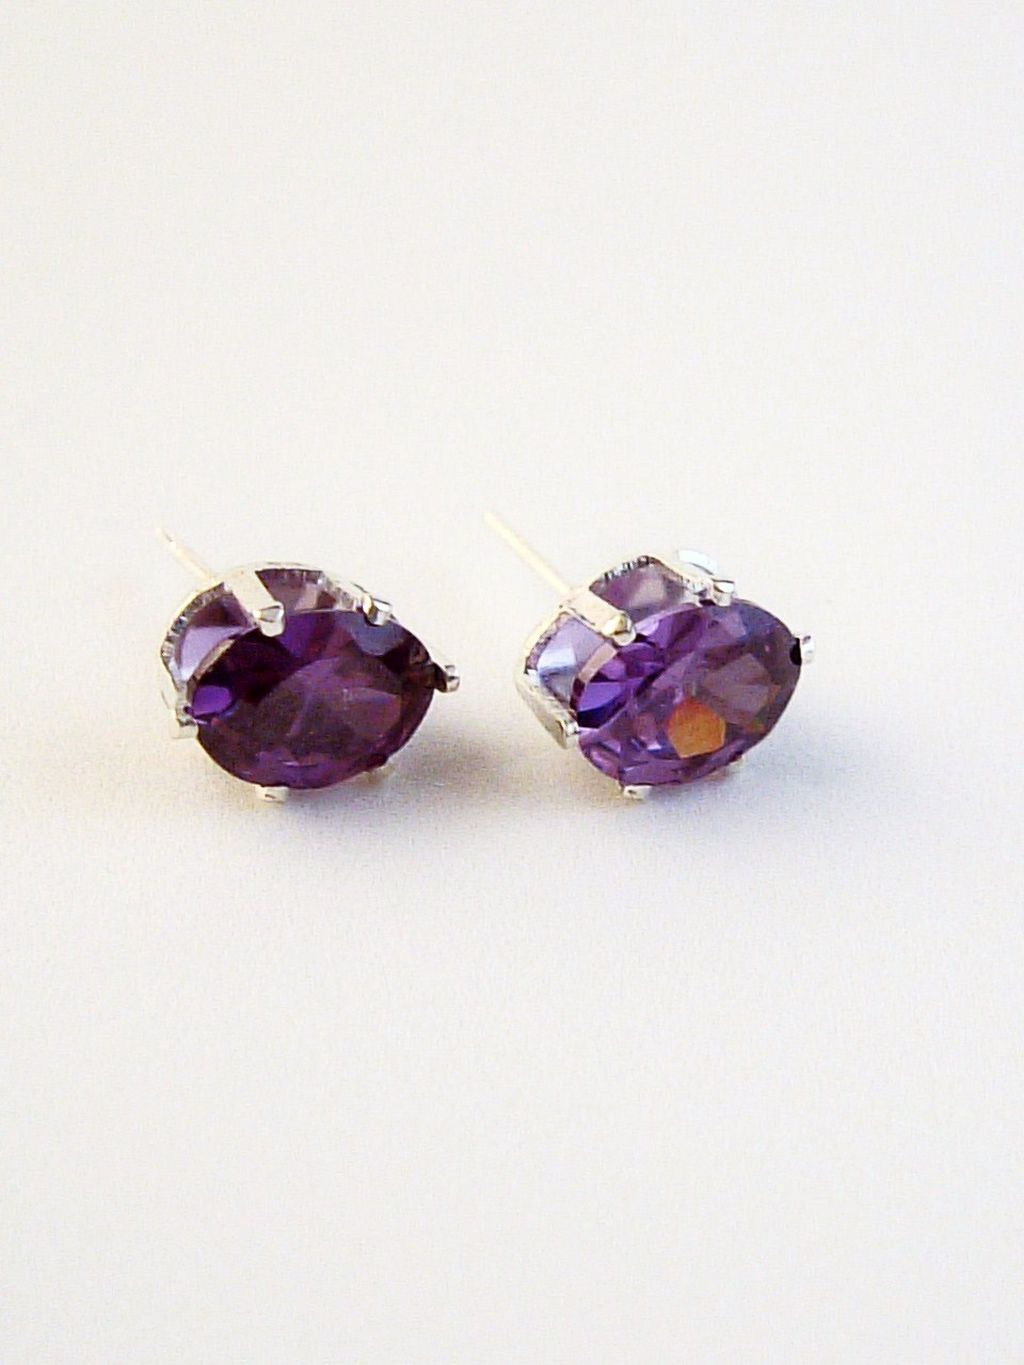 Amethyst Oval Cut Silver Stud Earrings Genuine CZ Cubic Zirconia